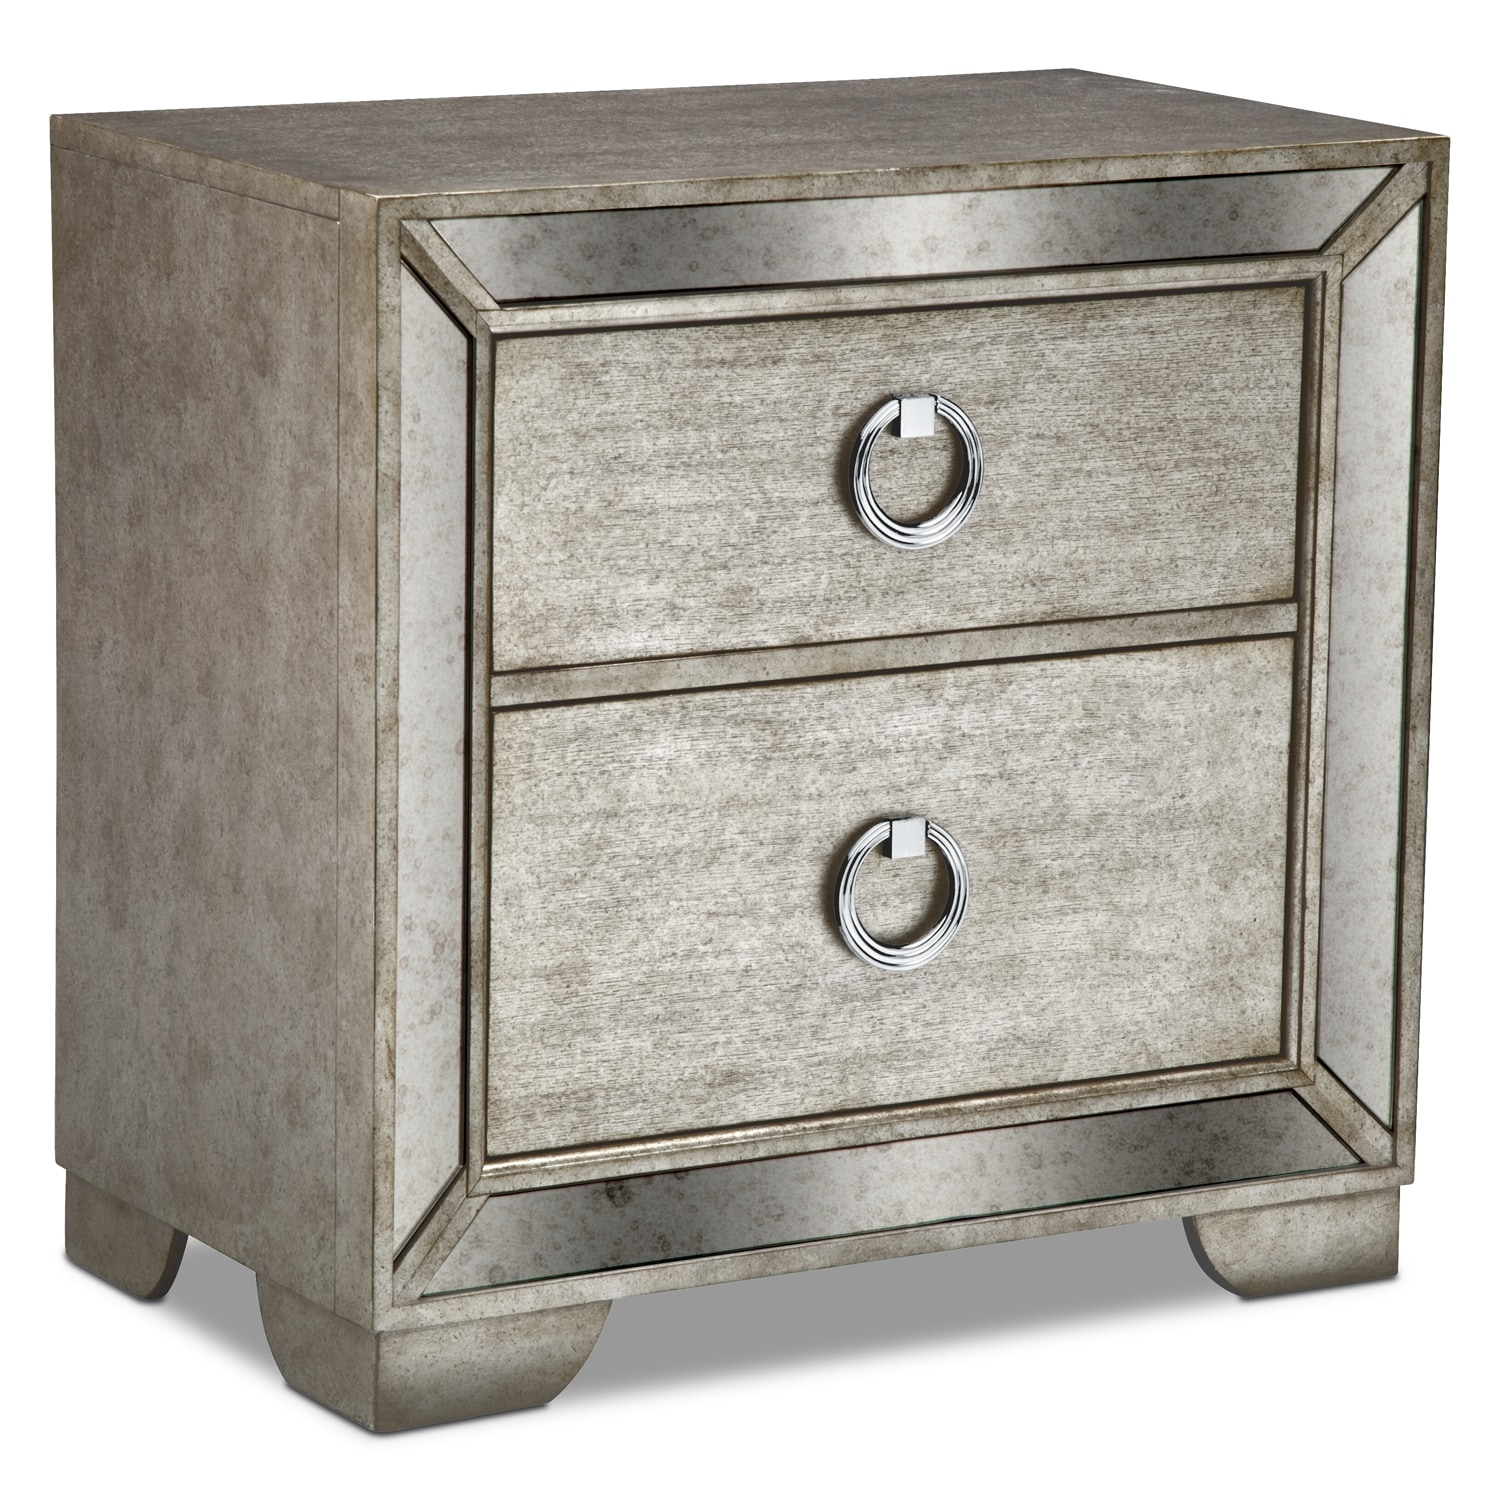 The Angelina Collection Metallic American Signature